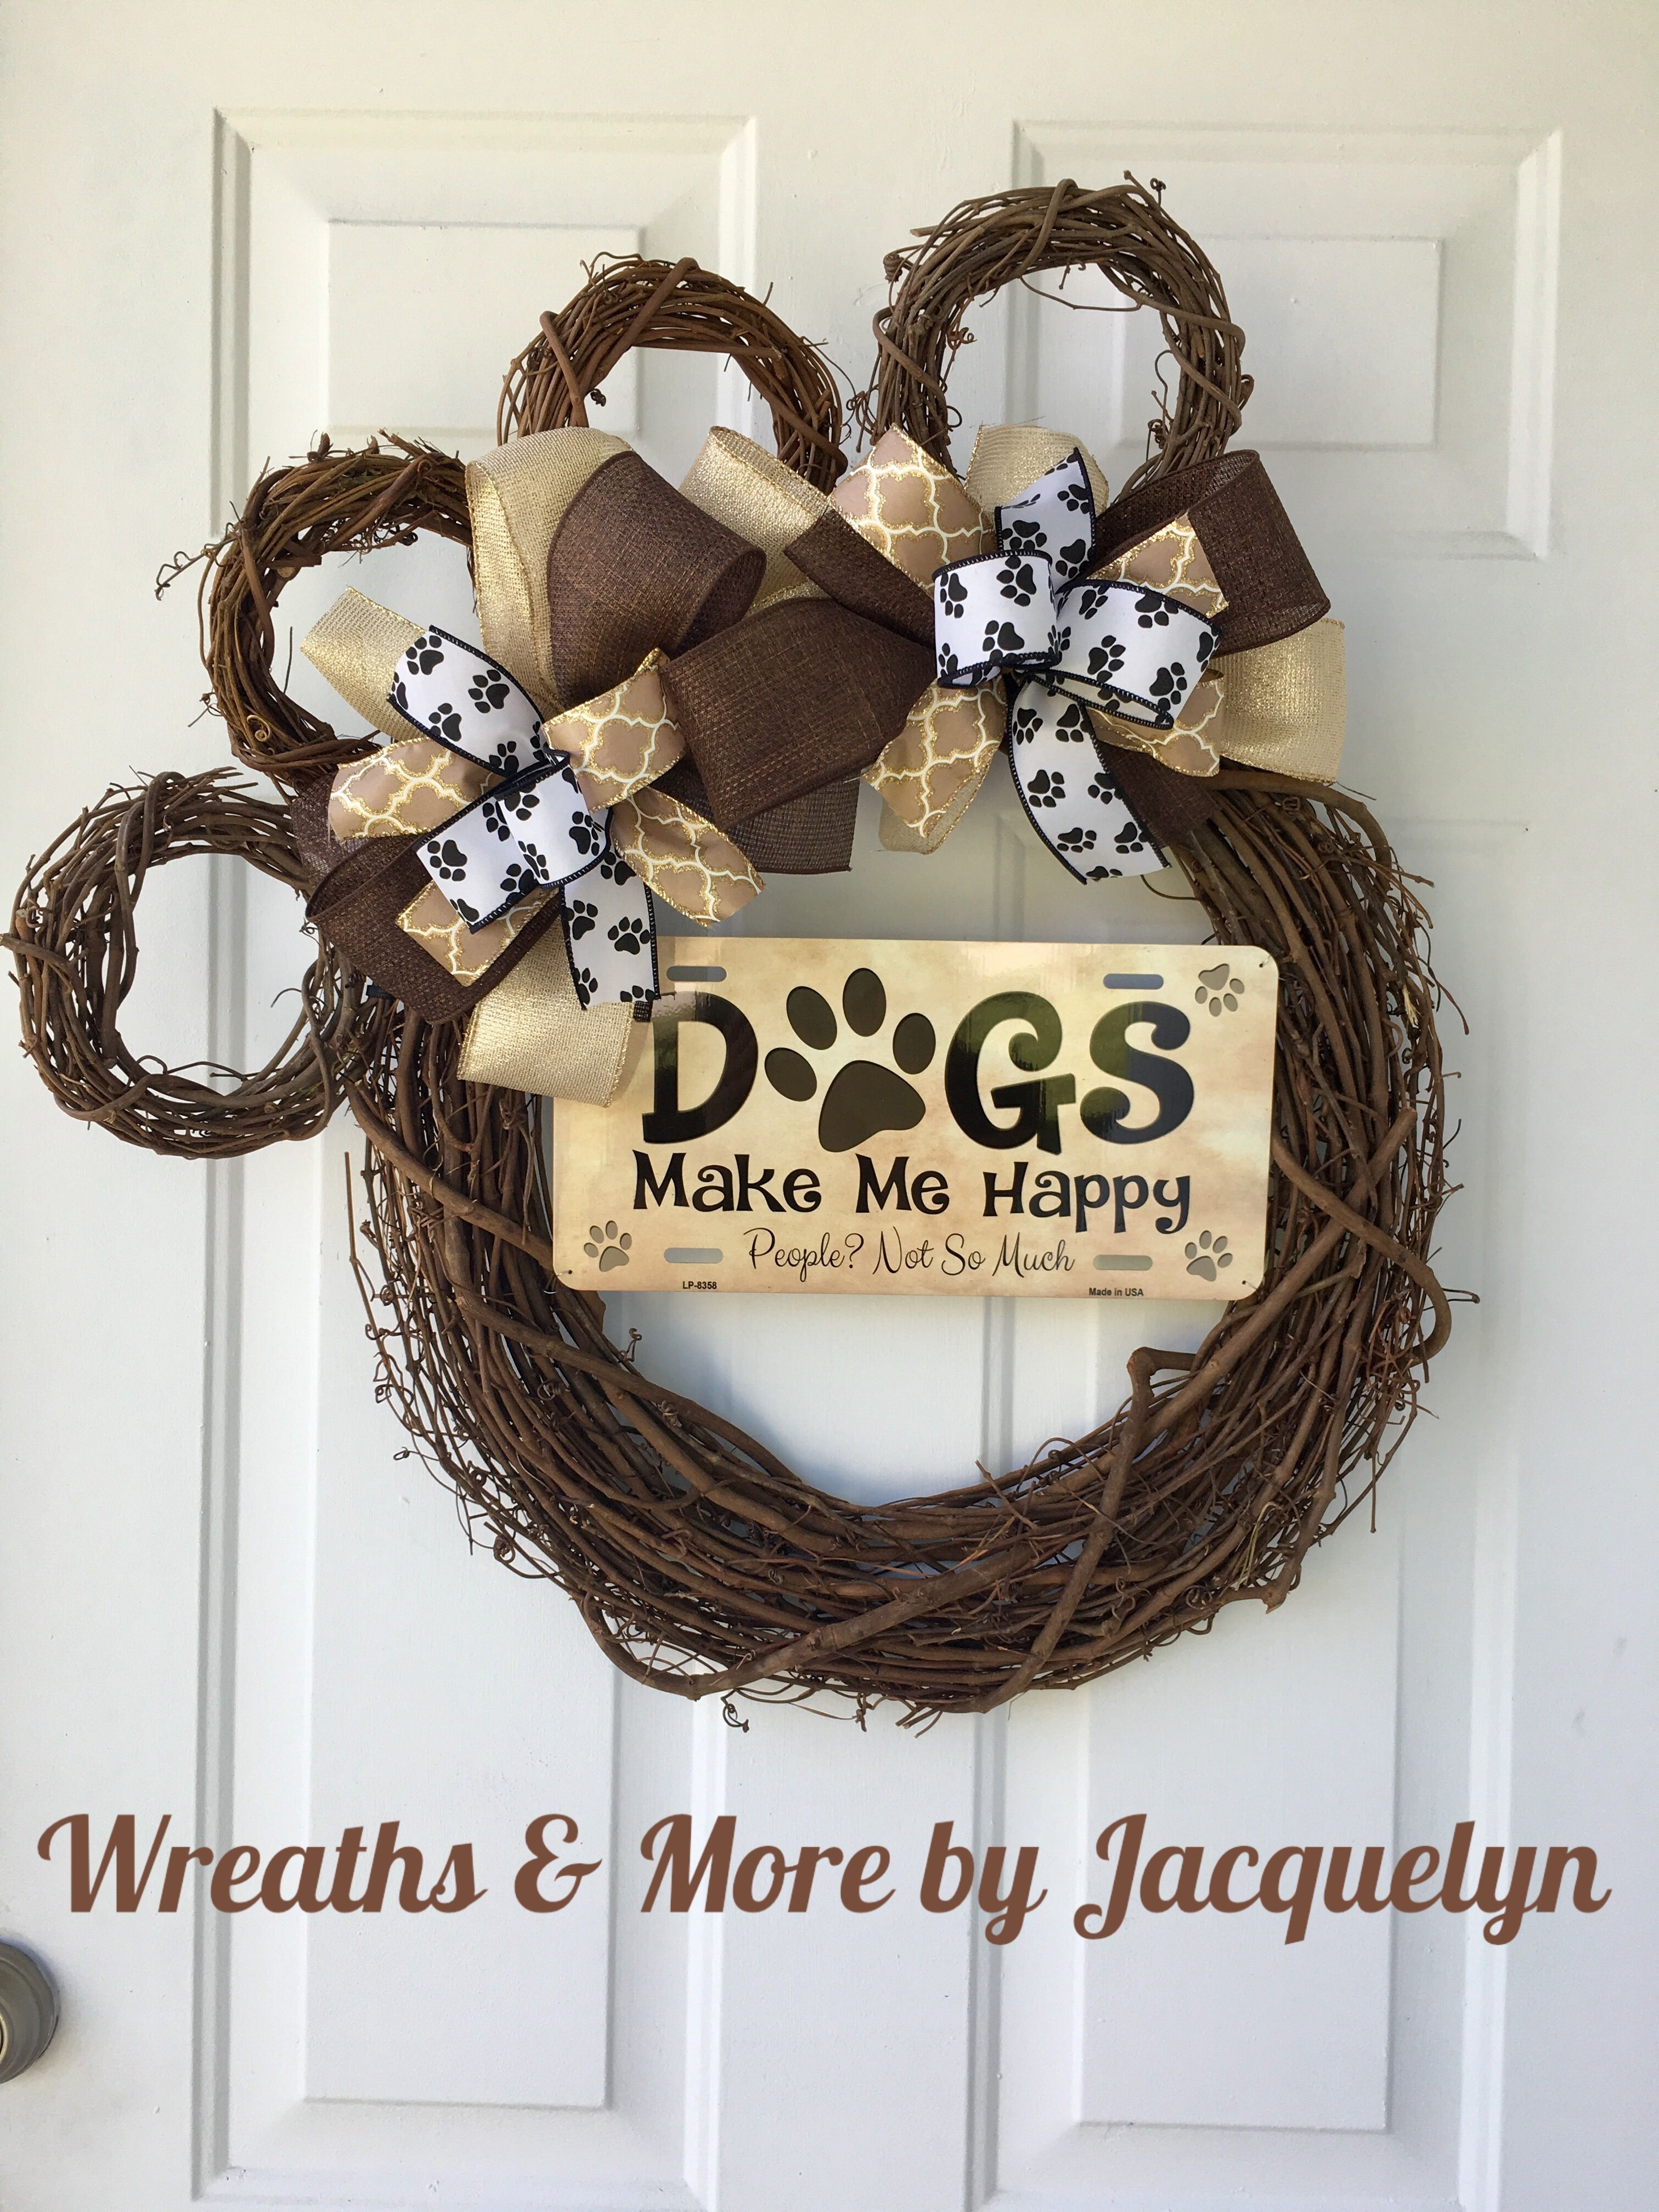 Dog Wreath Pet Home Decor Pawprint Wreath Dogs Make Me Happy People Not So Much Sign Dog Decor Gifts For Dog Lovers Owners Si Pet Wreath Wreaths Dog Decor